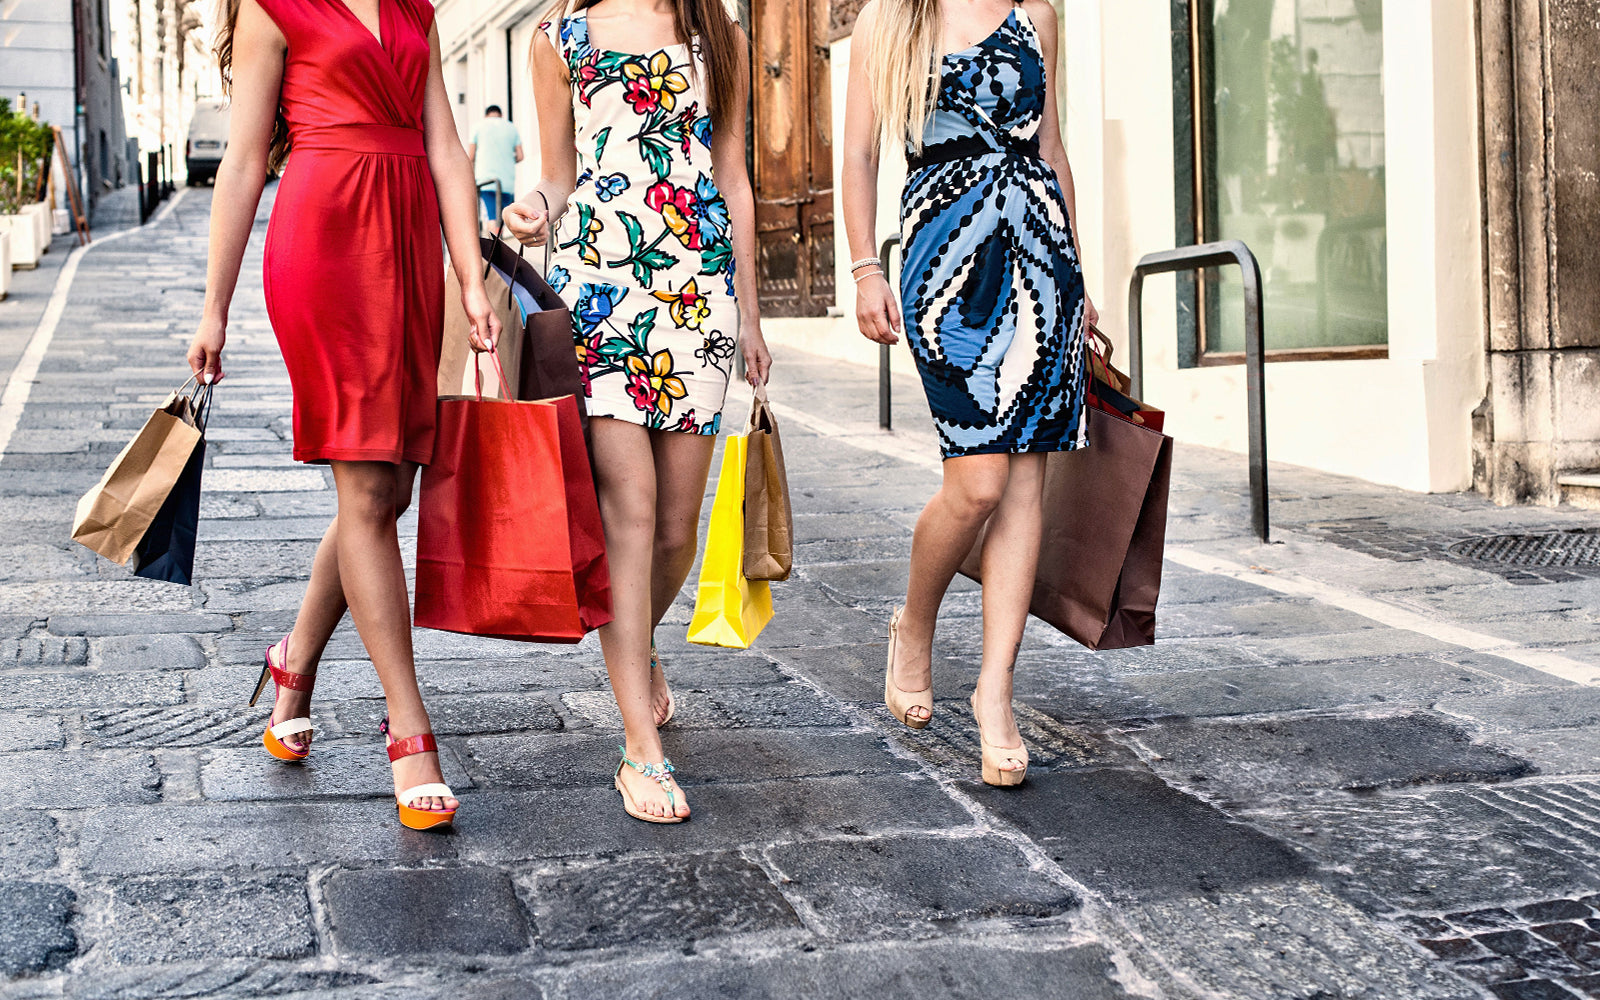 Shopping Experiences with Personal Shopper